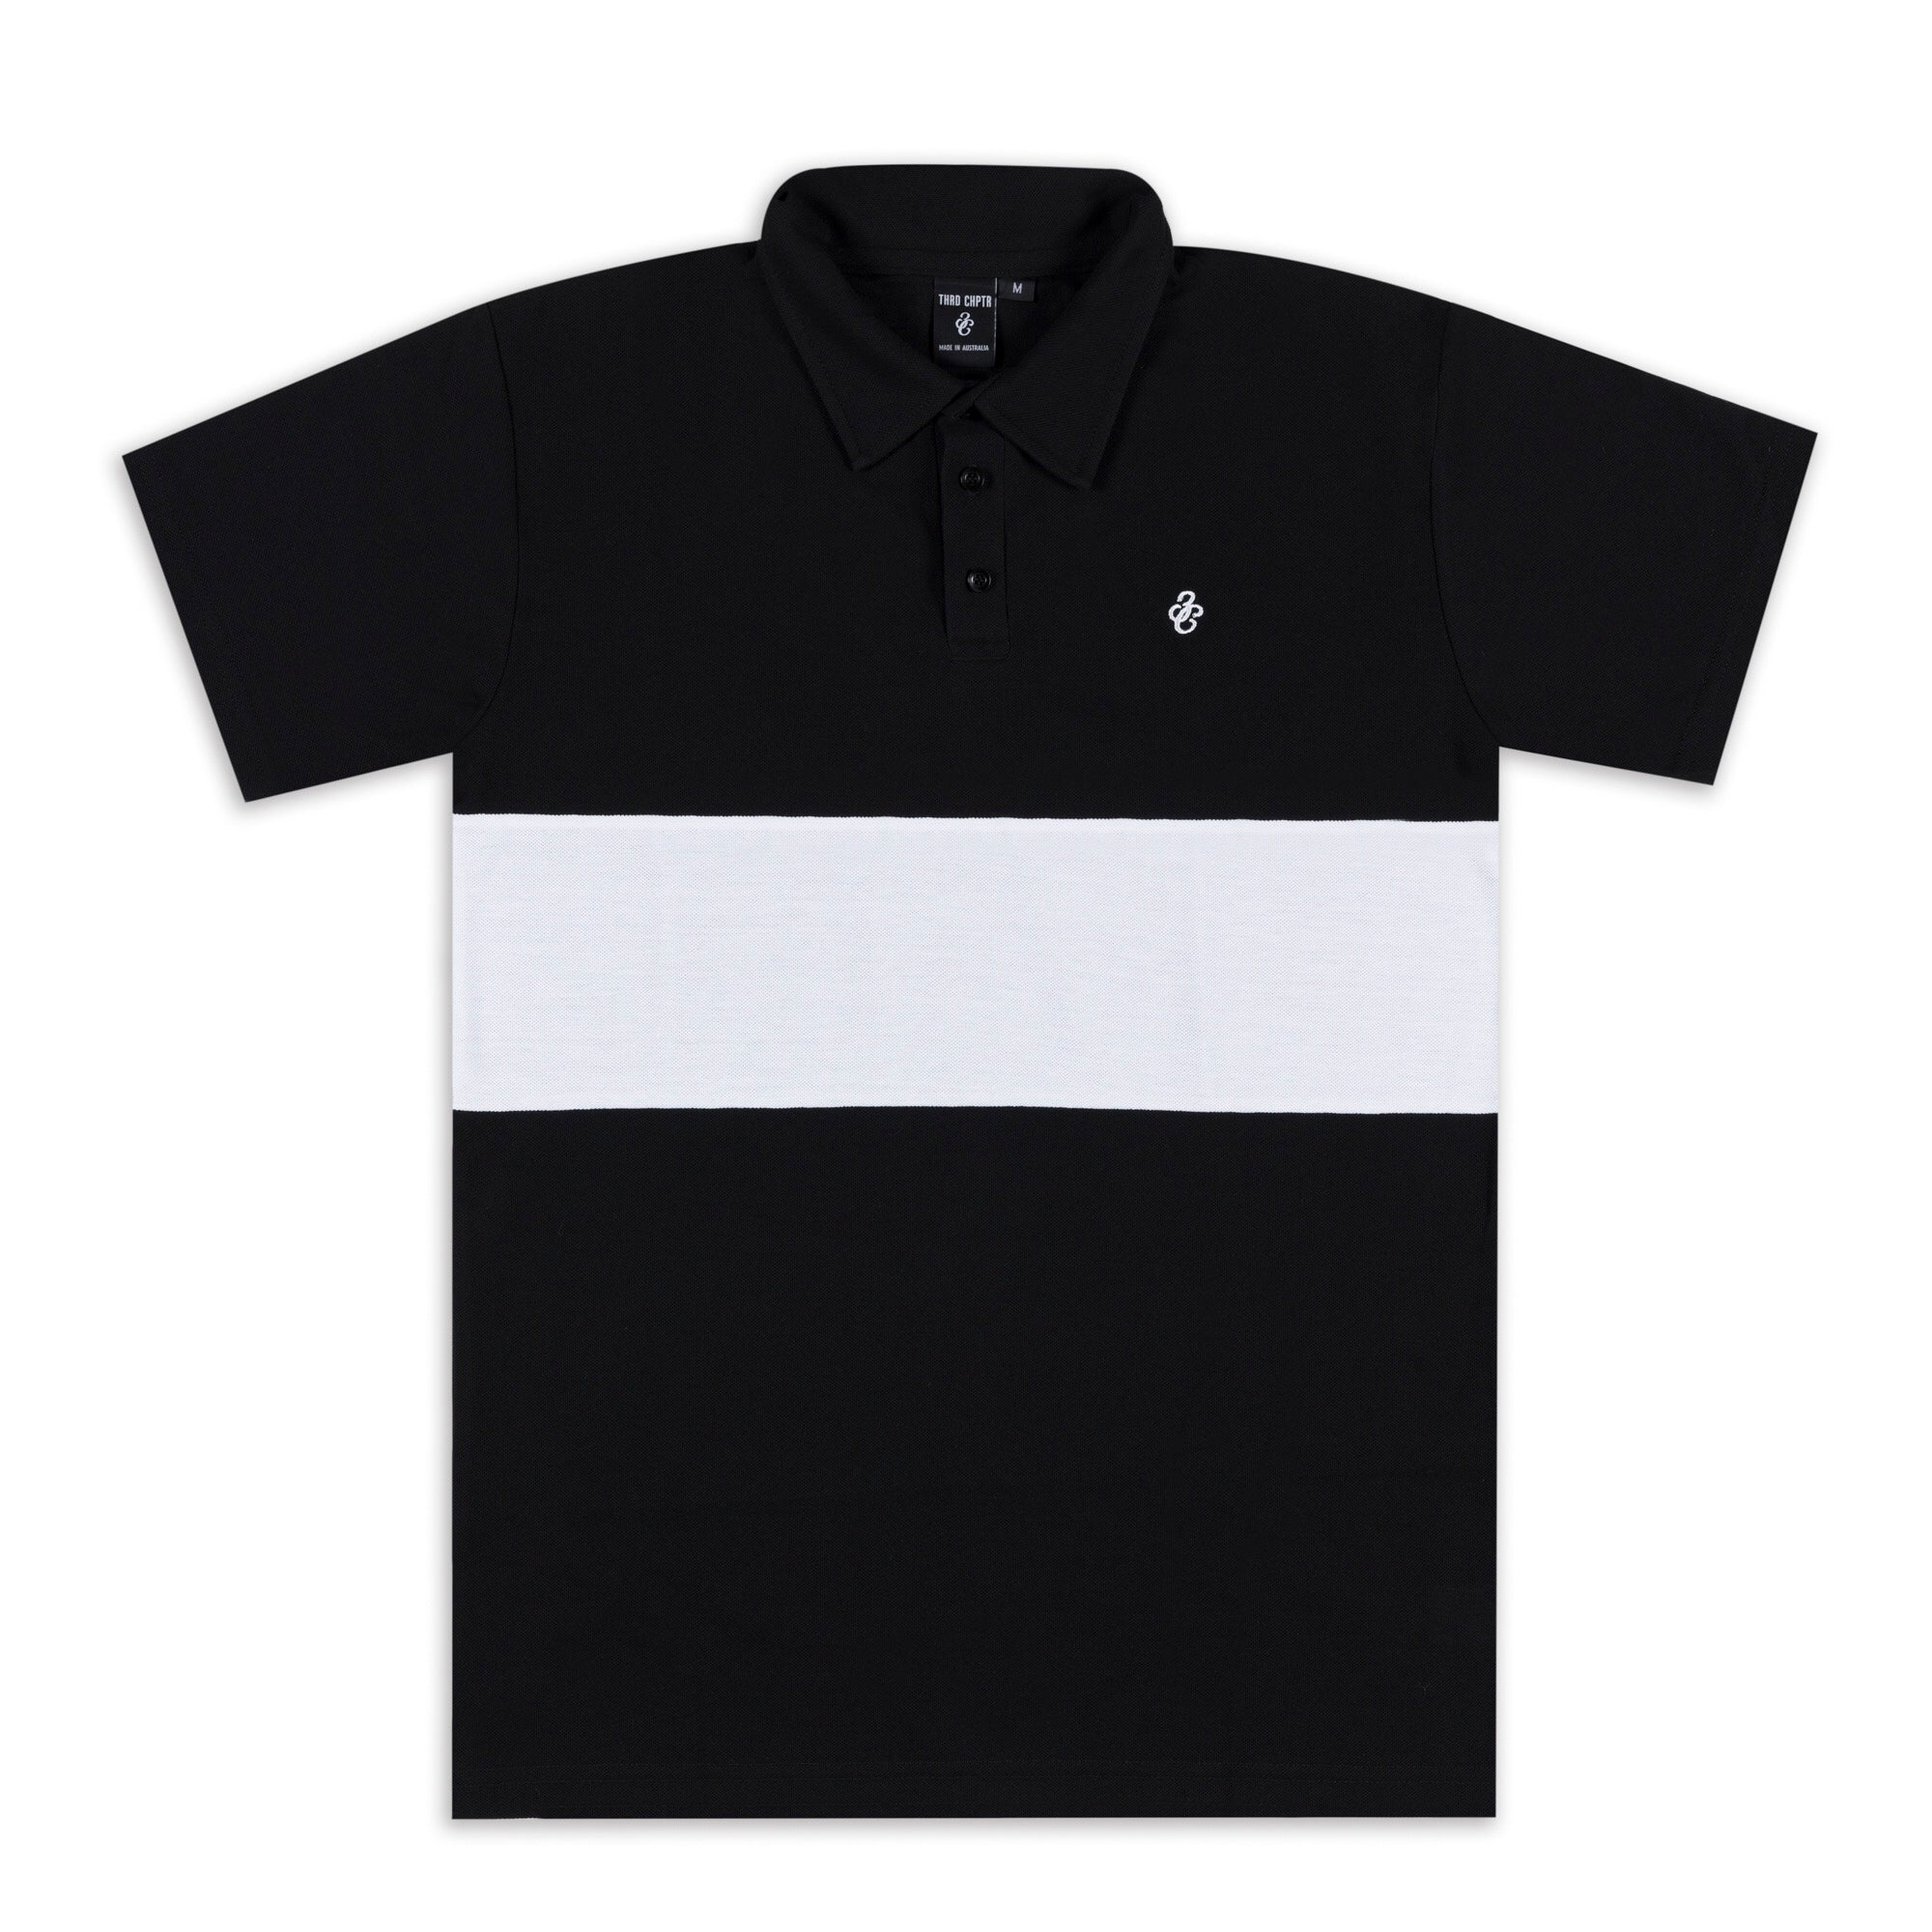 3C Short Sleeve Polo Black/White